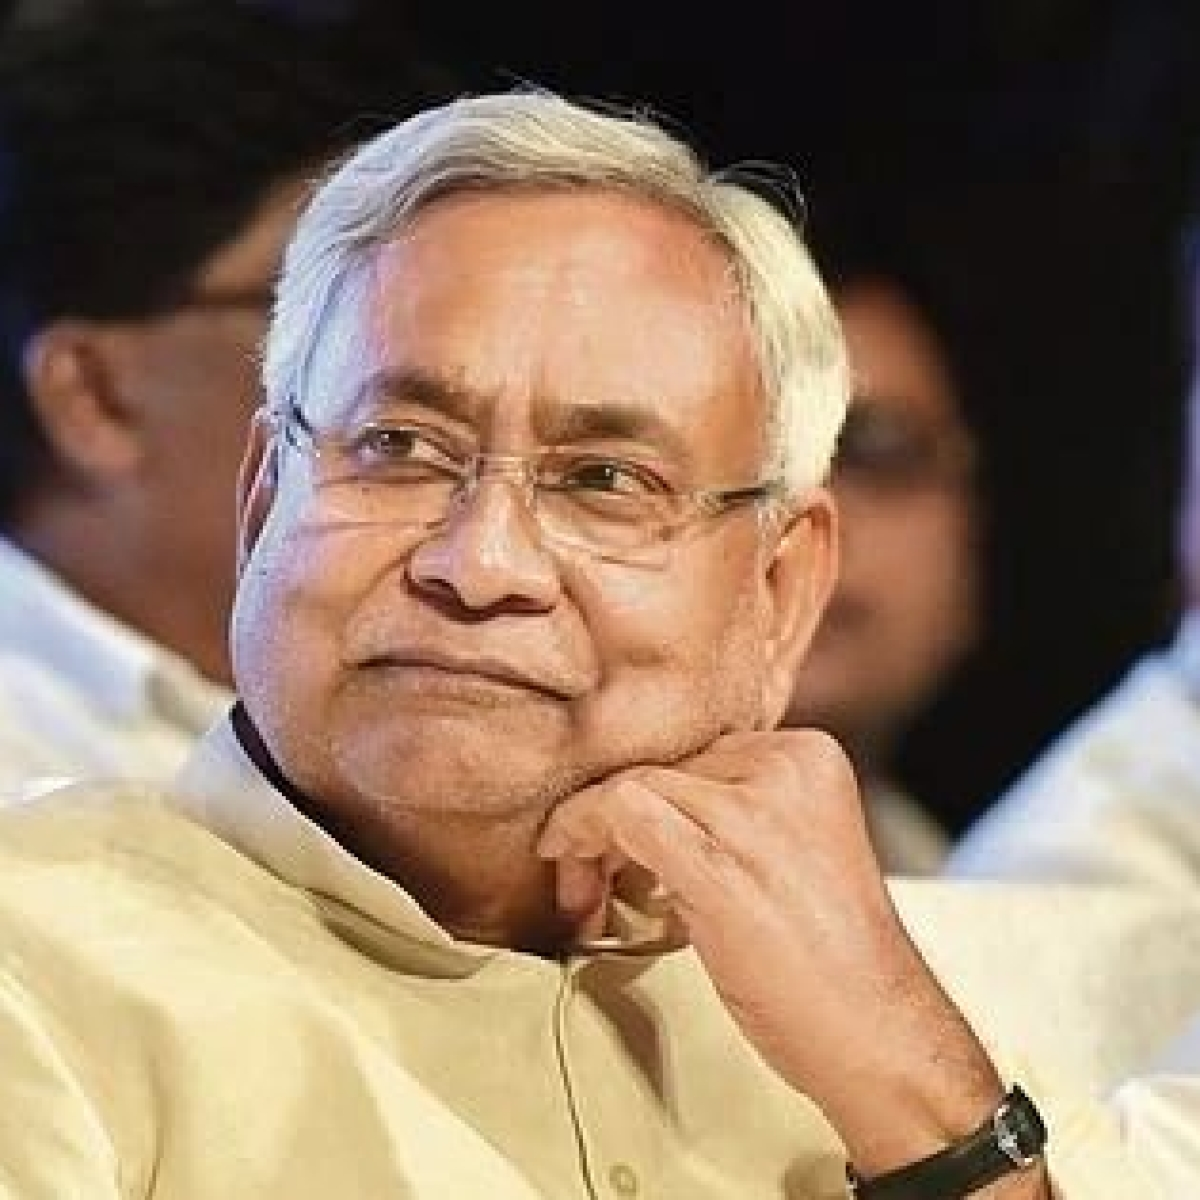 From free COVID-19 vaccination to 20 lakh jobs: Bihar Cabinet approves promises made by BJP ahead of polls